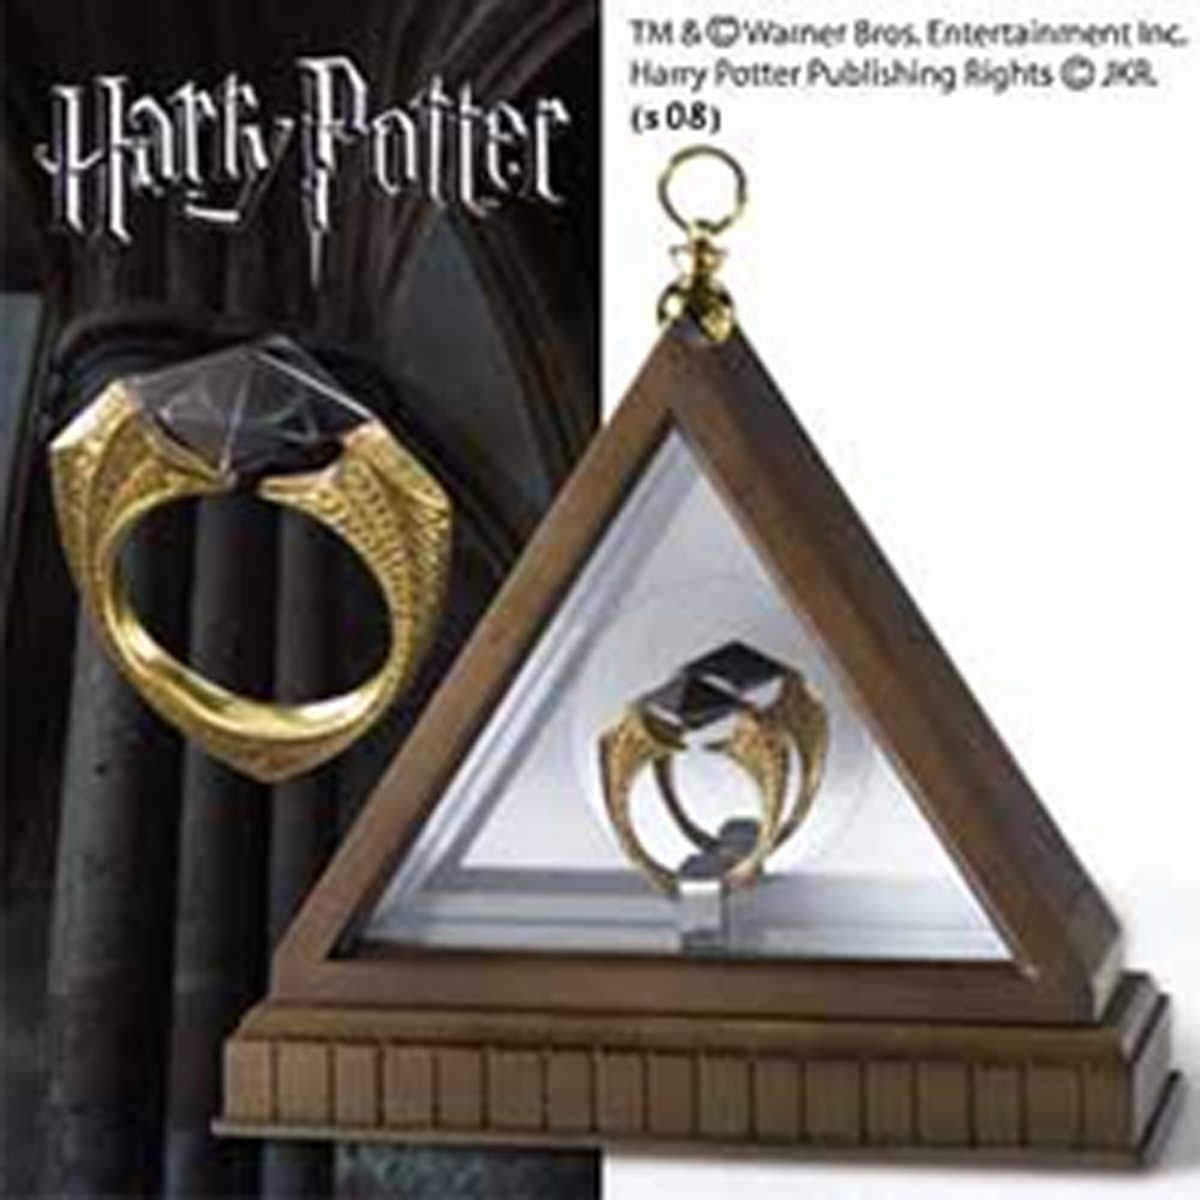 Noble Collection - Harry Potter Replica 1/1 Lord Voldemort's Horcrux Ring (gold-pla